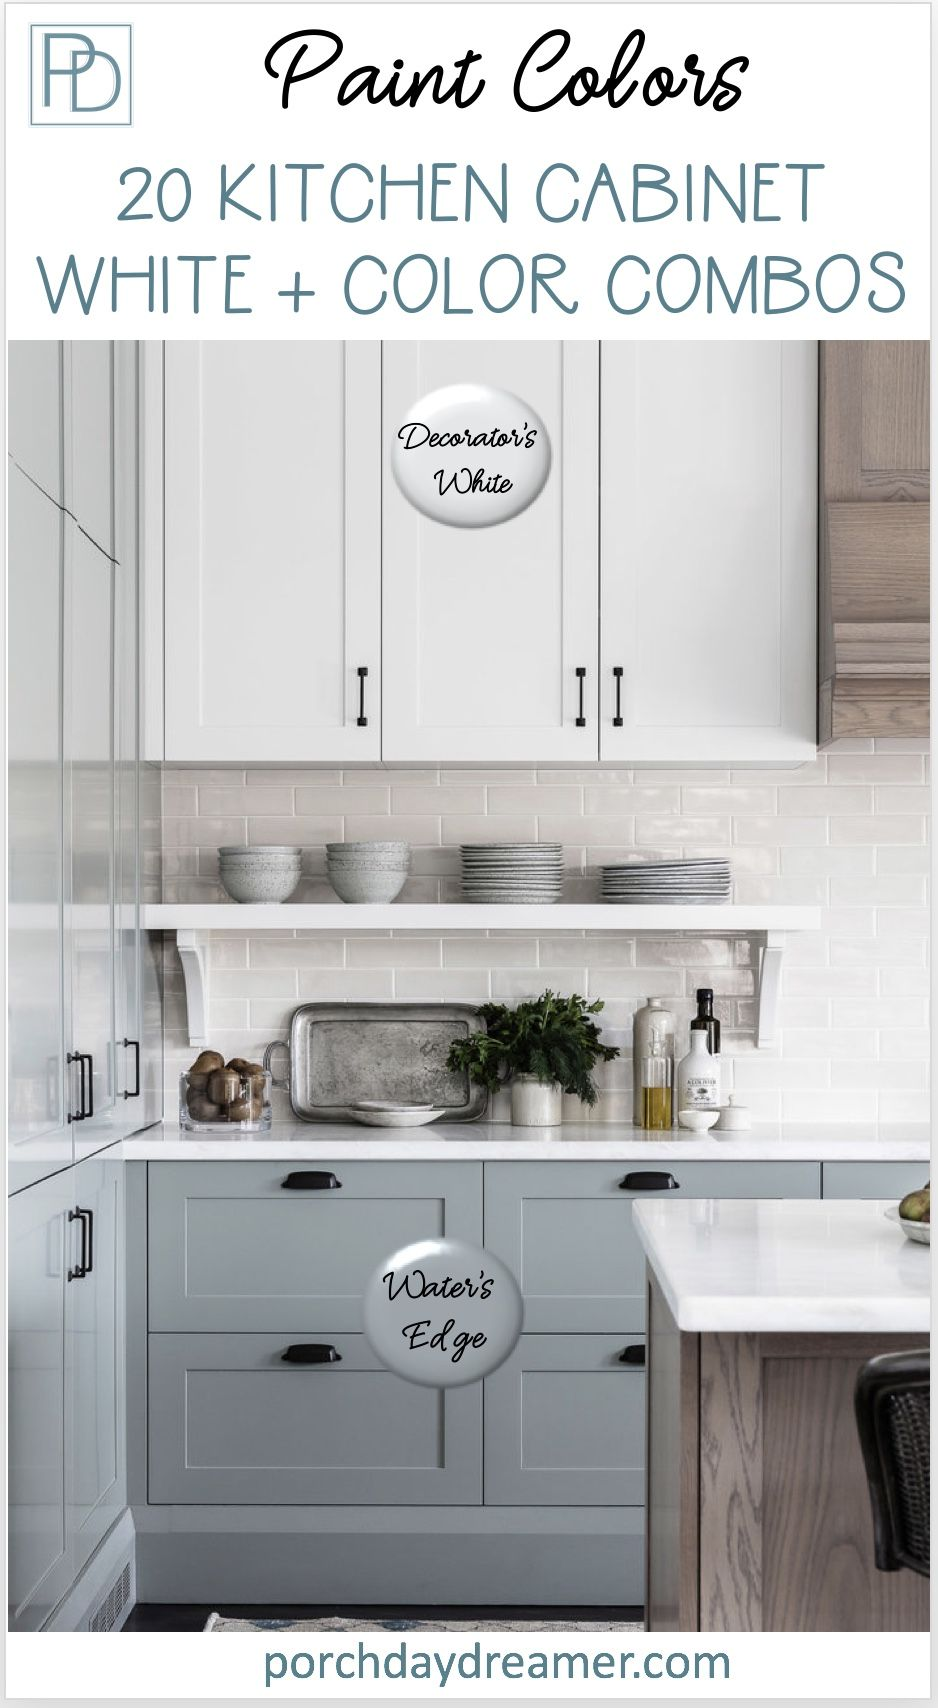 20 Cabinet Paint Color Combos For The Kitchen Kitchen Cabinets Color Combination Kitchen Cabinet Trends Painted Kitchen Cabinets Colors